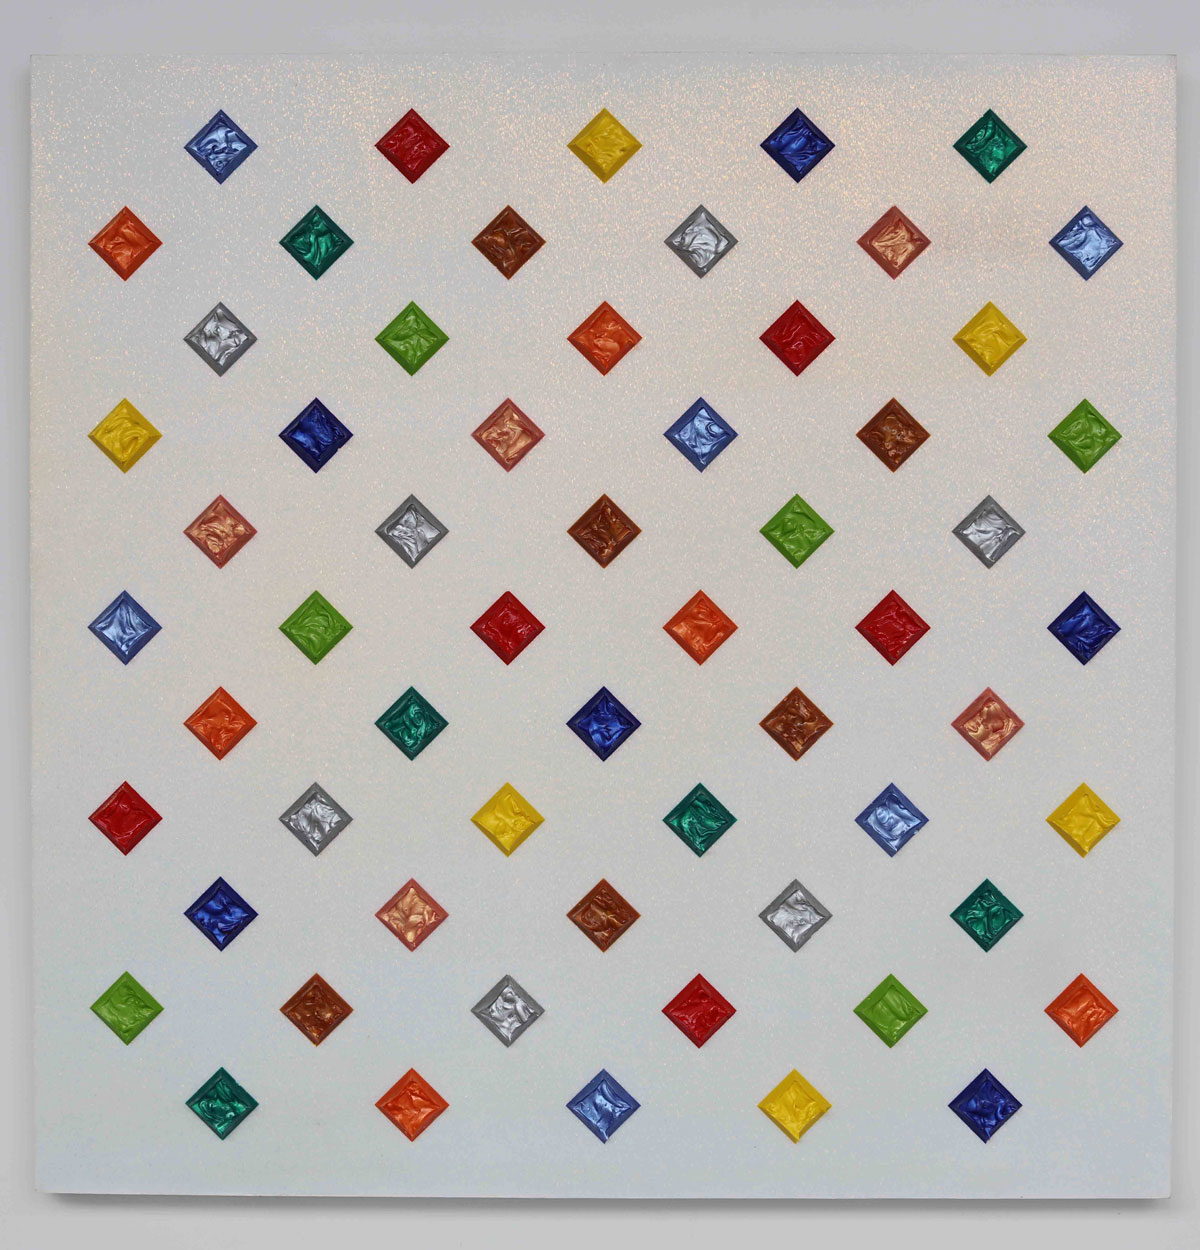 Untitled , 2010, acrylic on panel, 40 x 40 inches